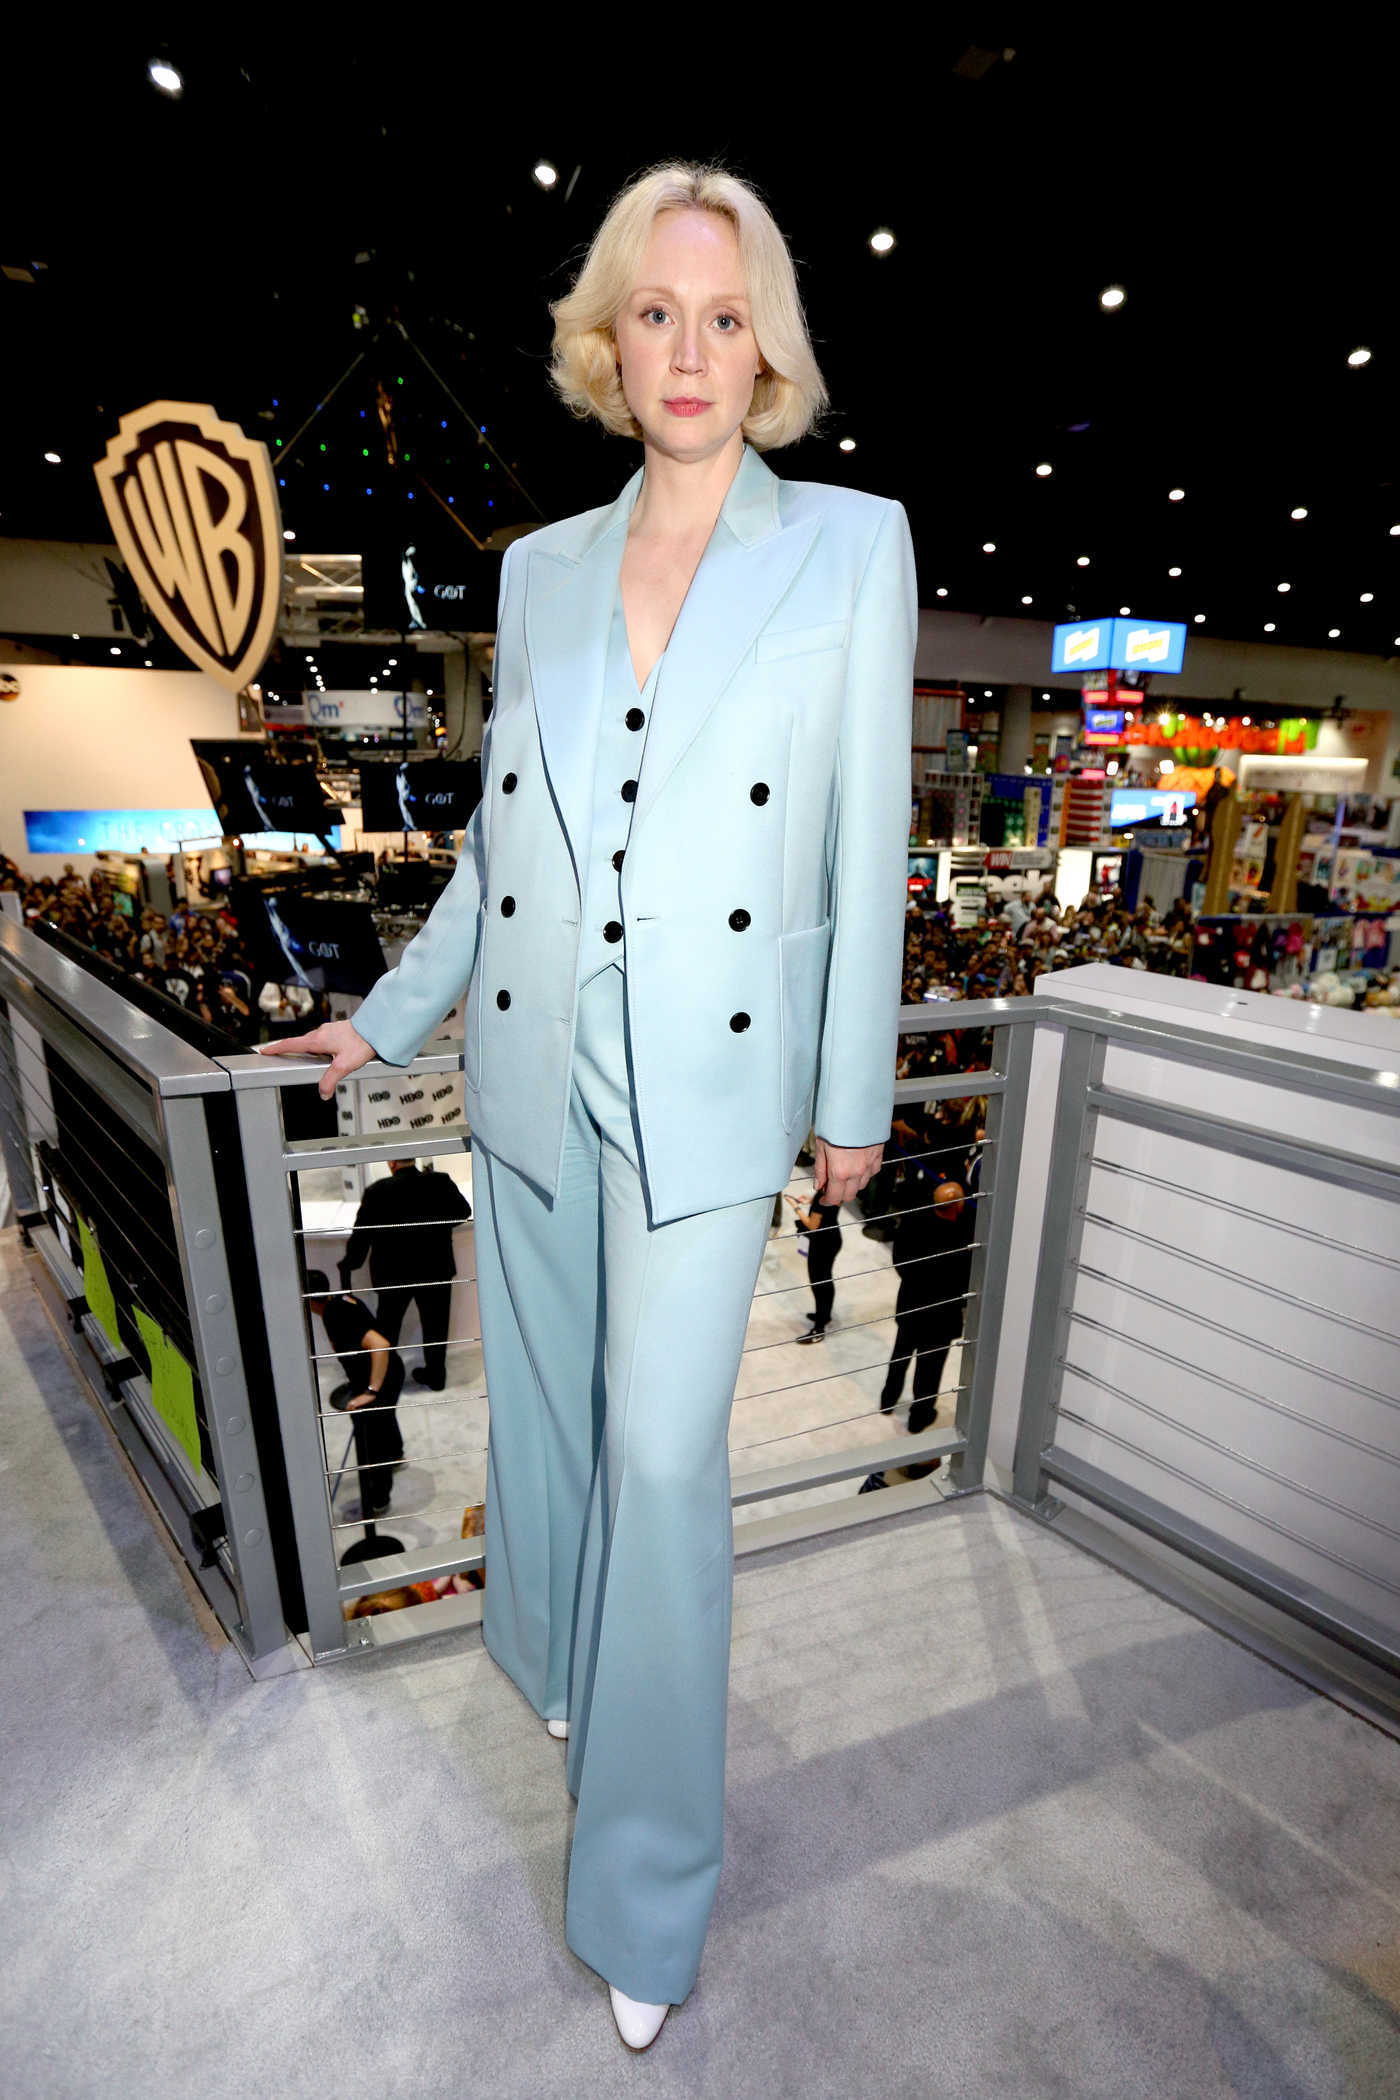 Gwendoline Christie at the Game of Thrones Autograph Signing During the San Diego Comic-Con International 07/21/2017